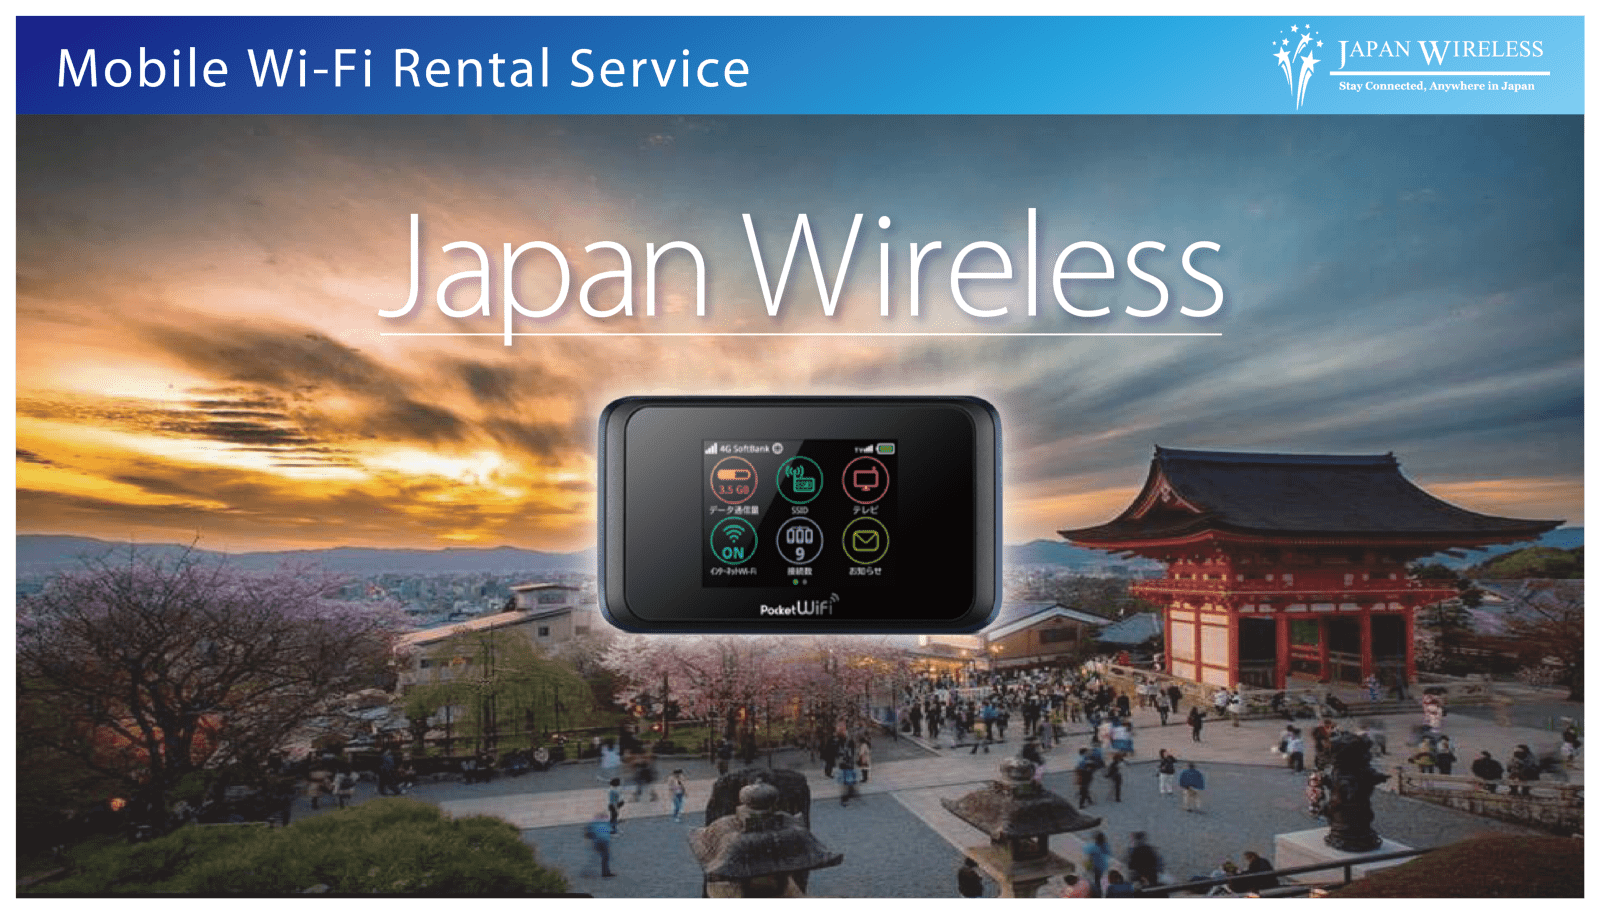 Rental Pocket WiFi by Japan Wireless